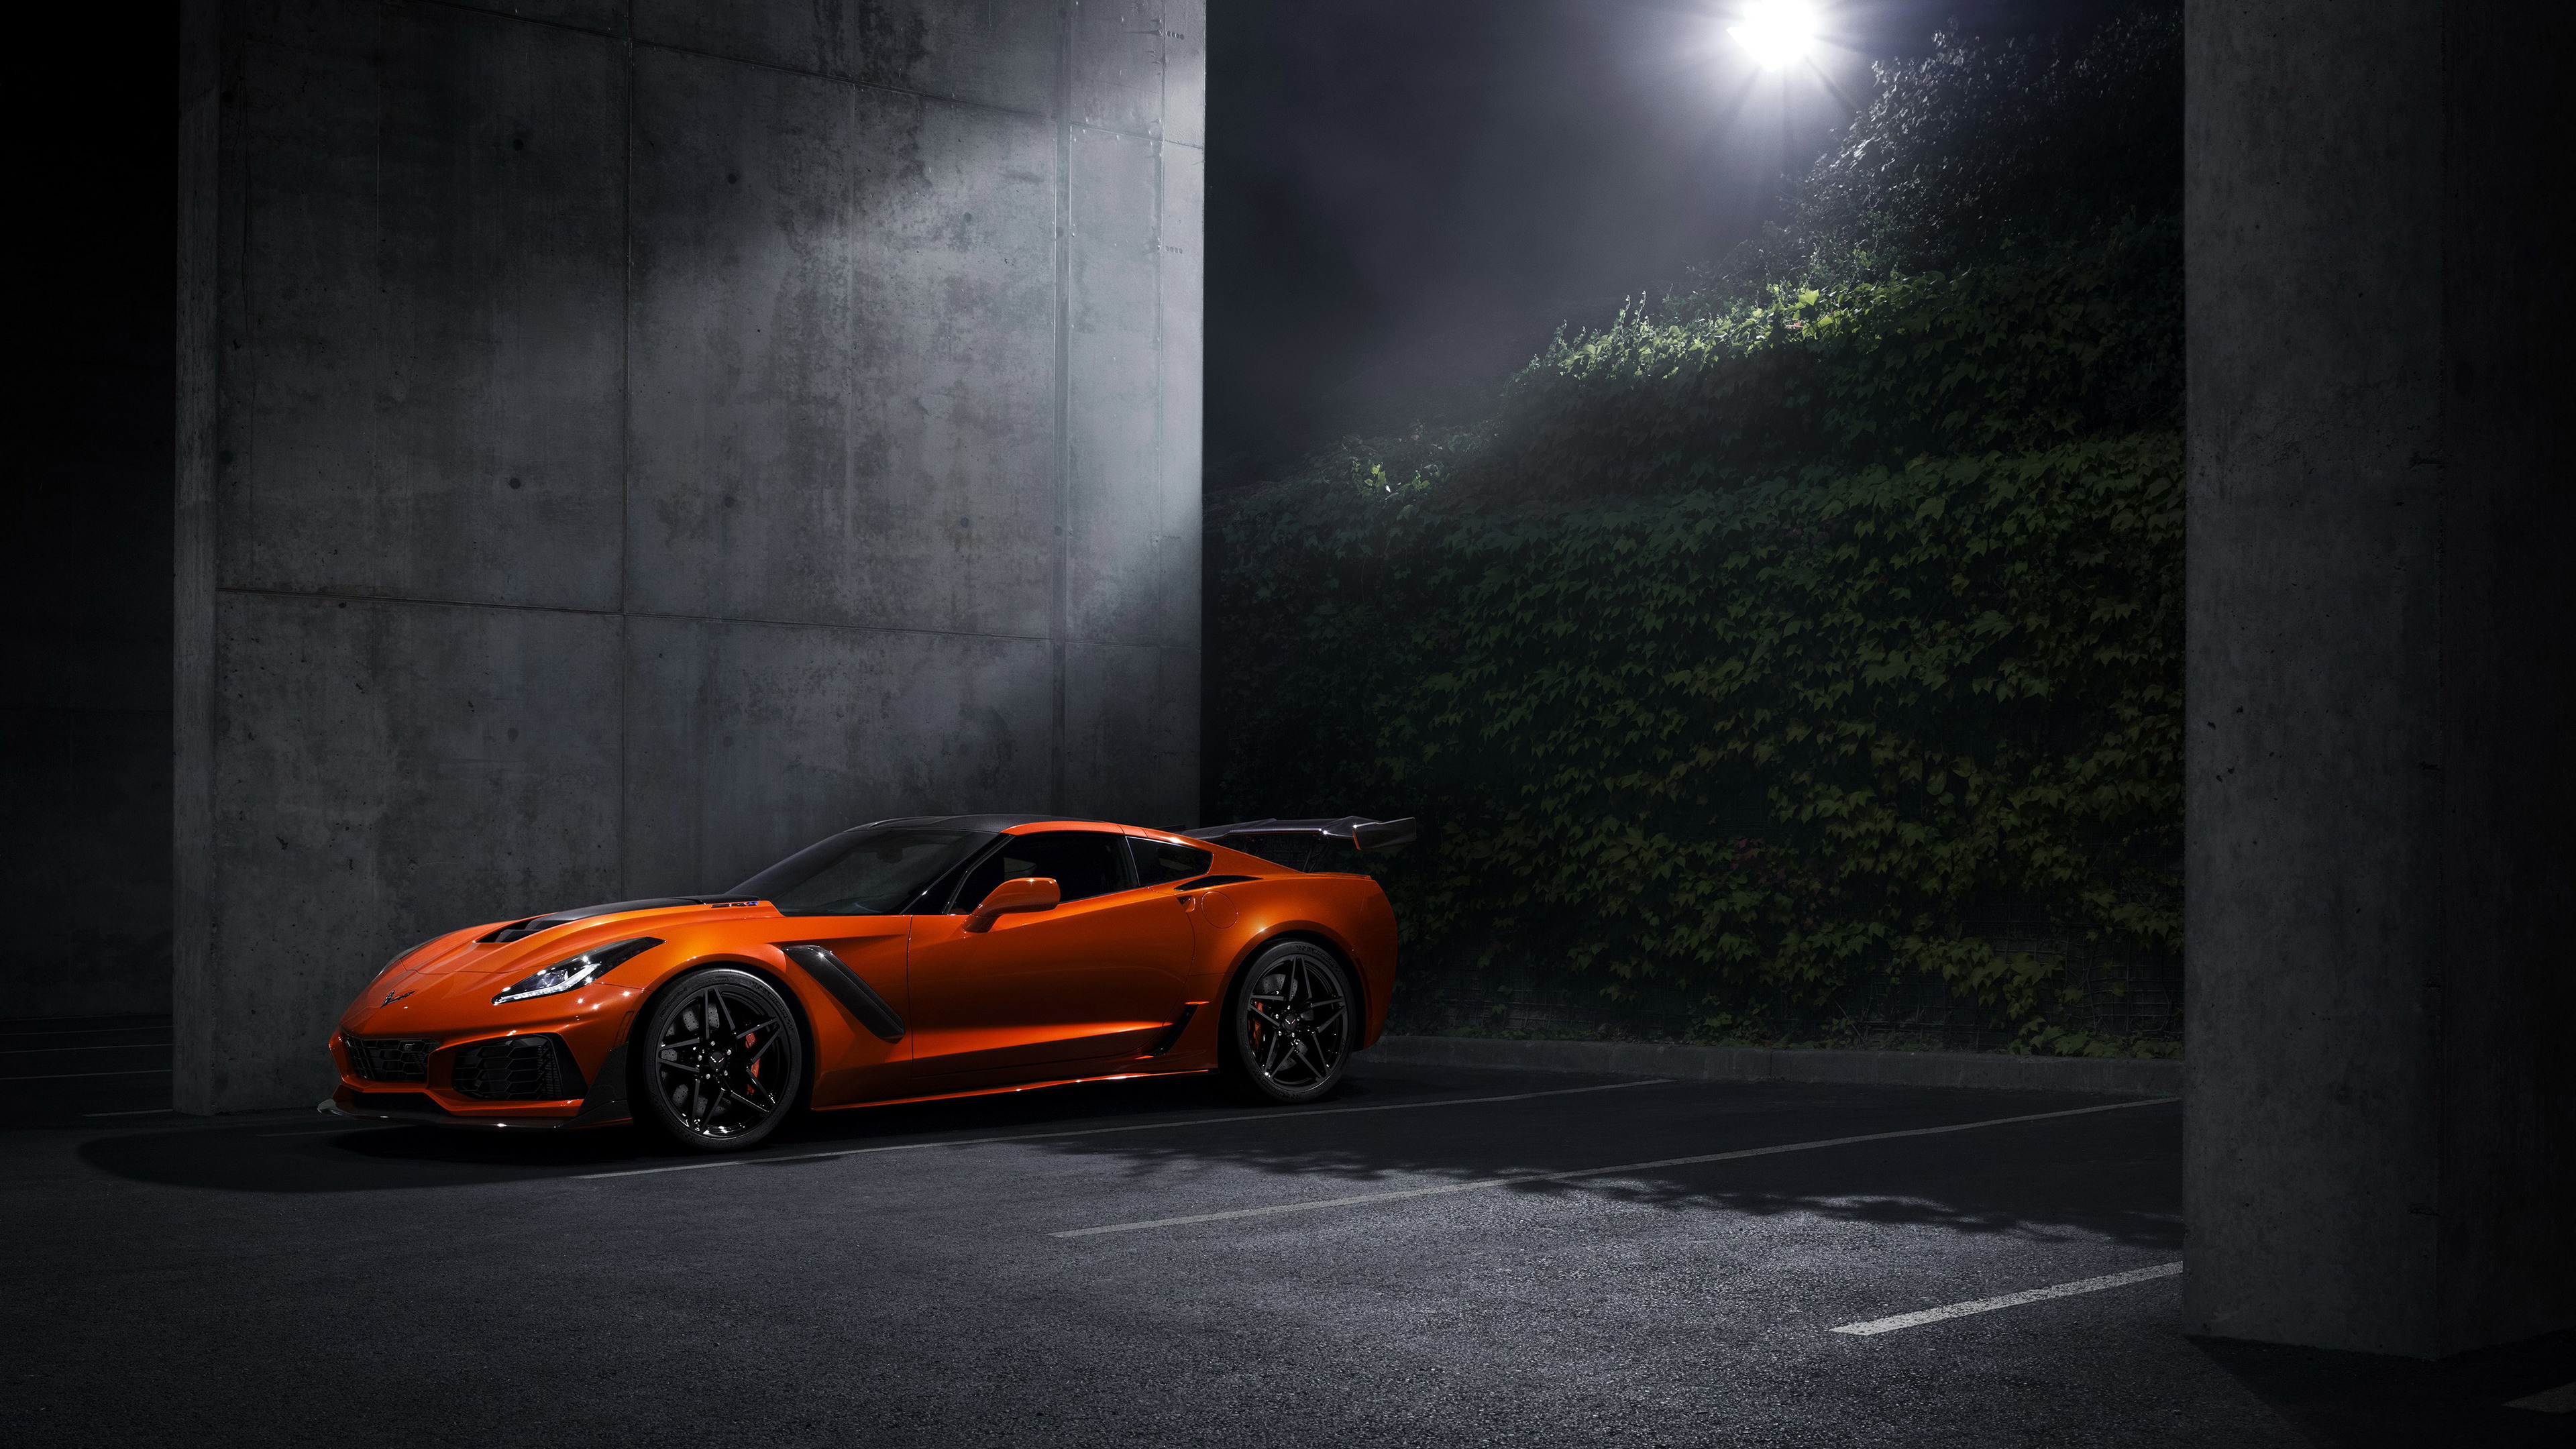 2019 chevrolet corvette zr1 1539107970 - 2019 Chevrolet Corvette ZR1 - hd-wallpapers, corvette wallpapers, chevrolet wallpapers, chevrolet corvette zr1 wallpapers, cars wallpapers, 4k-wallpapers, 2019 cars wallpapers